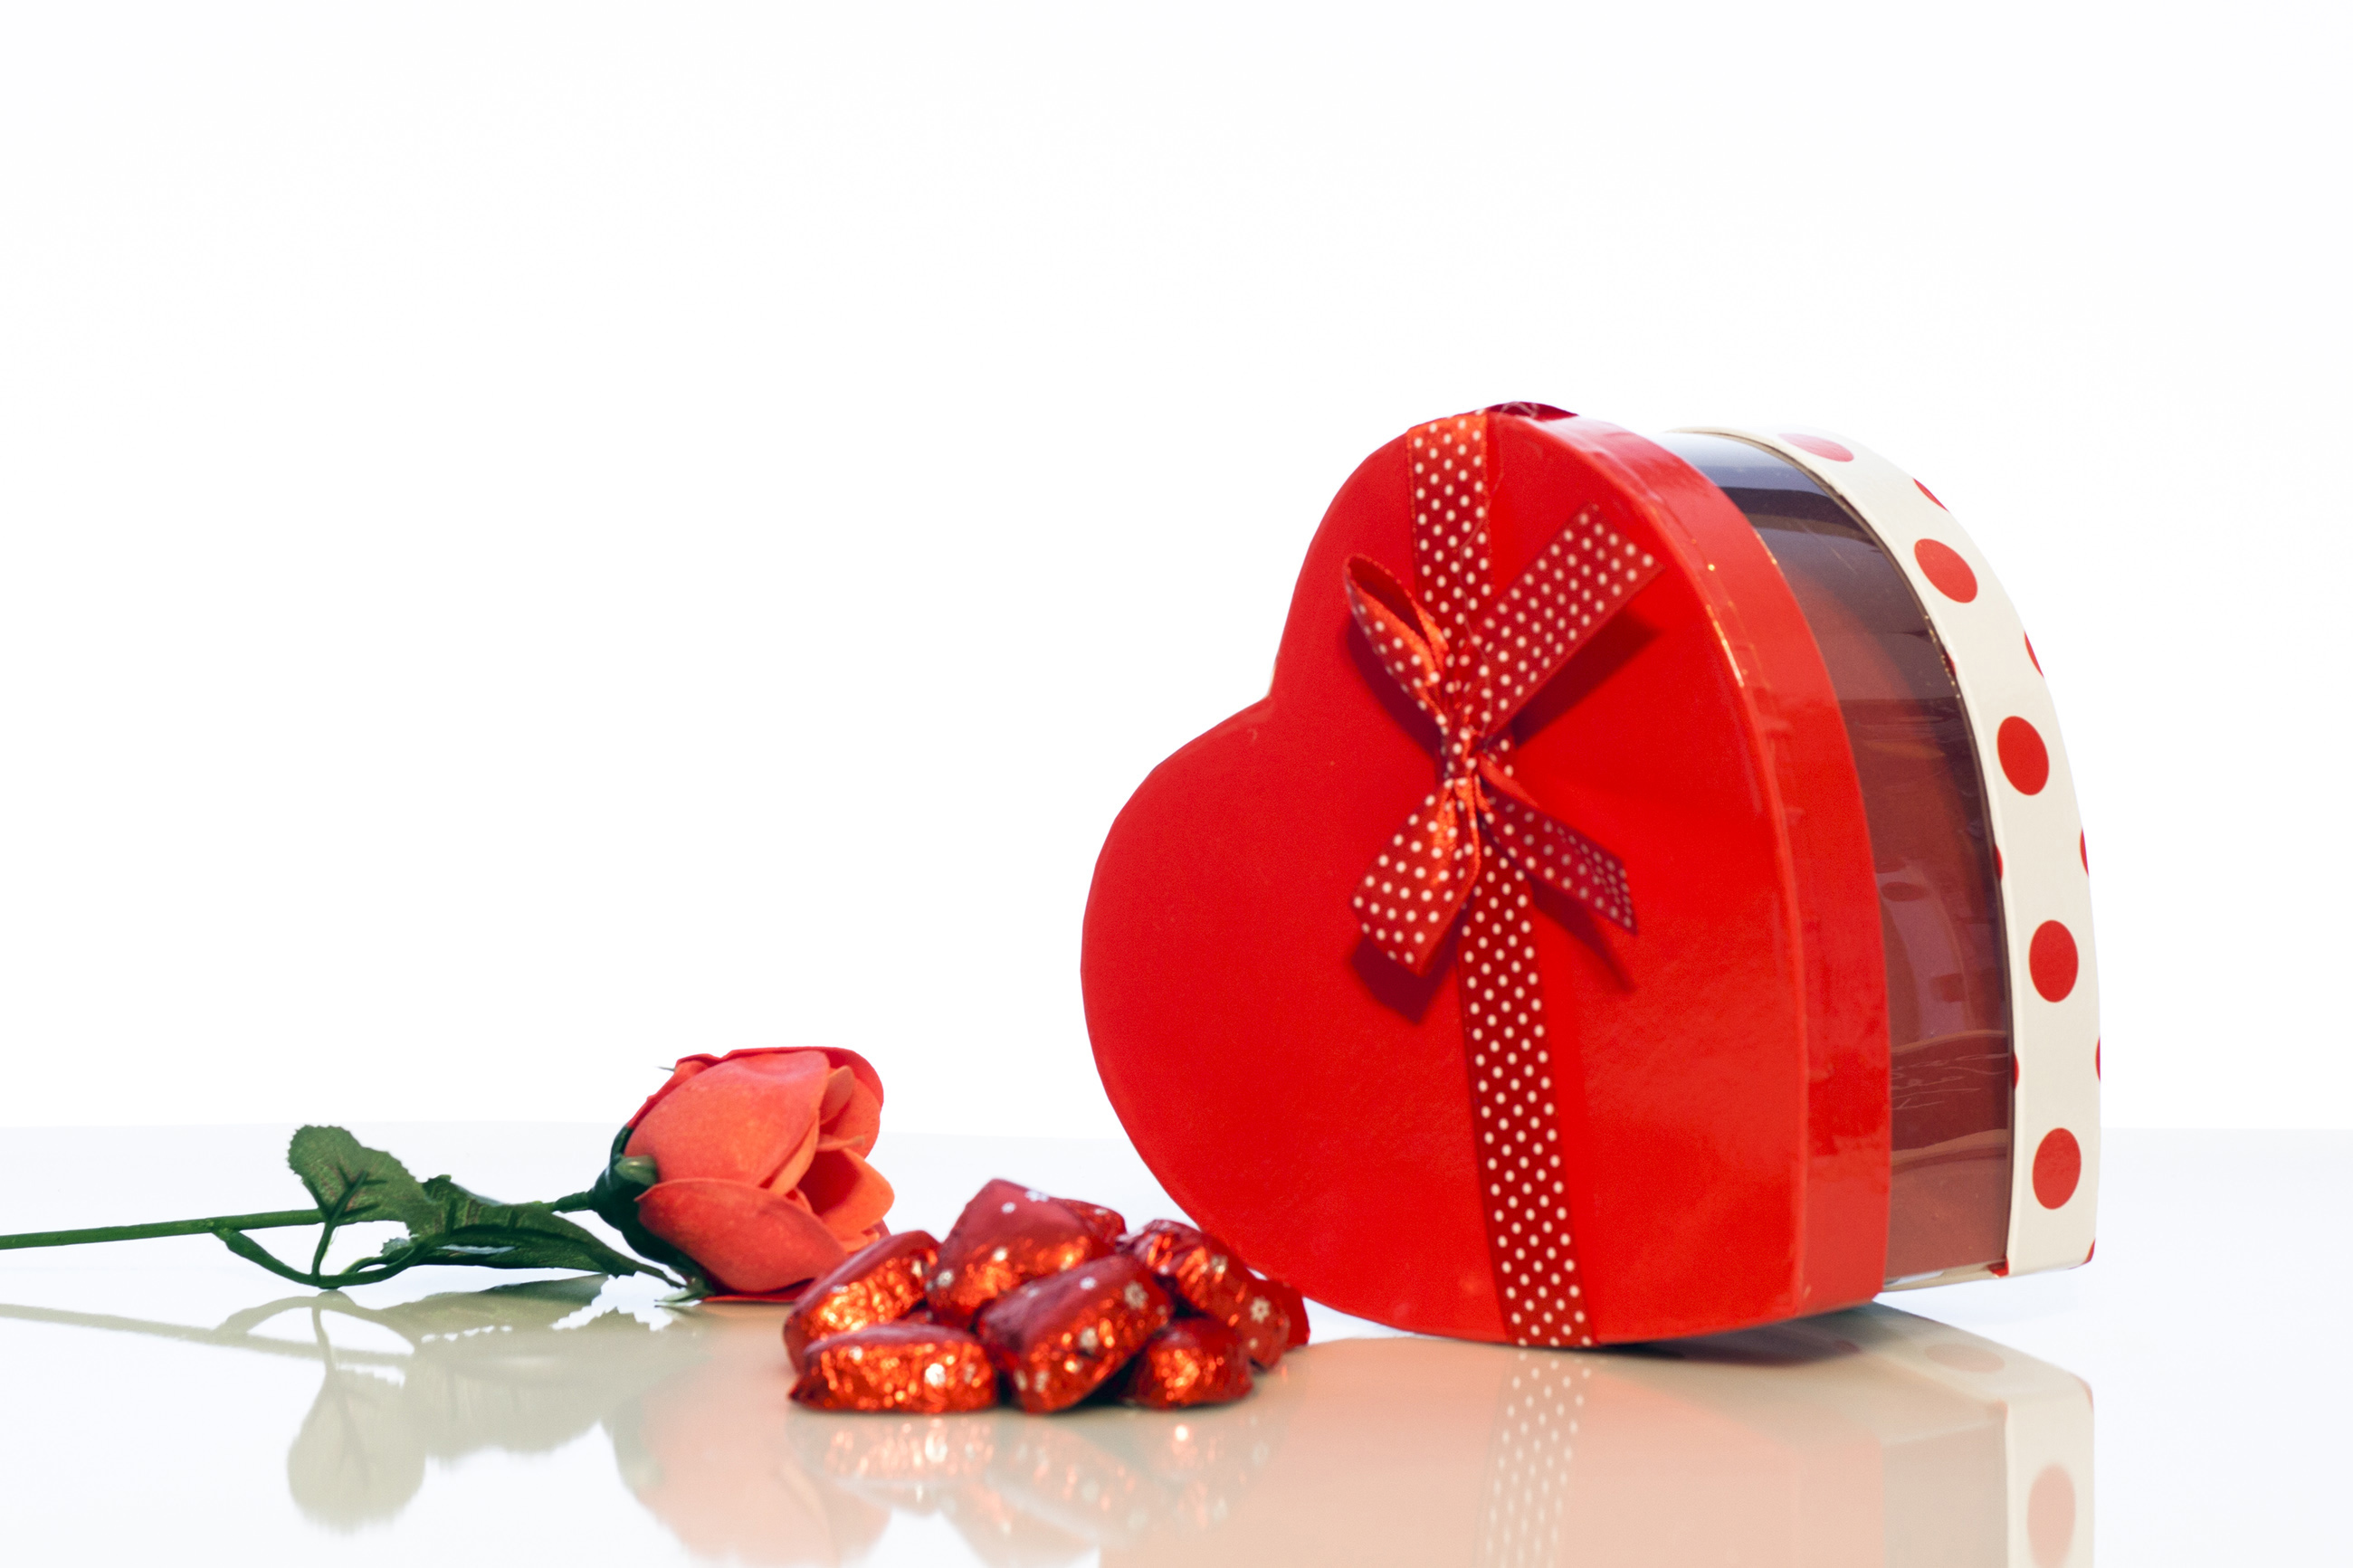 Box candy and rose, Patterned, Present, Red, Paper, HQ Photo